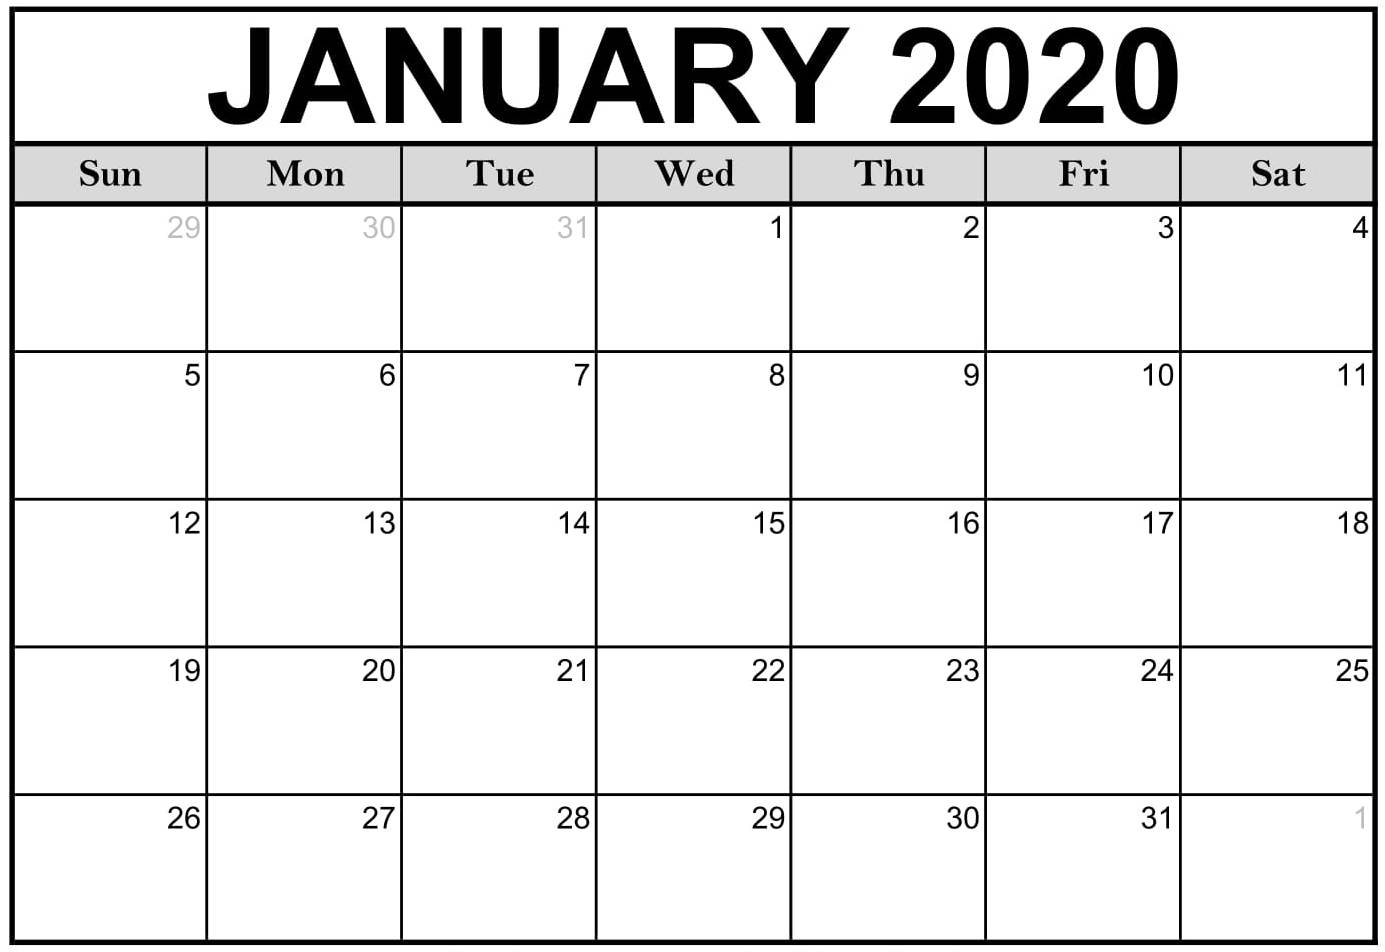 Free Printable January 2020 Calendar Editable Datesheets pertaining to Free Fillable Calendars 2020